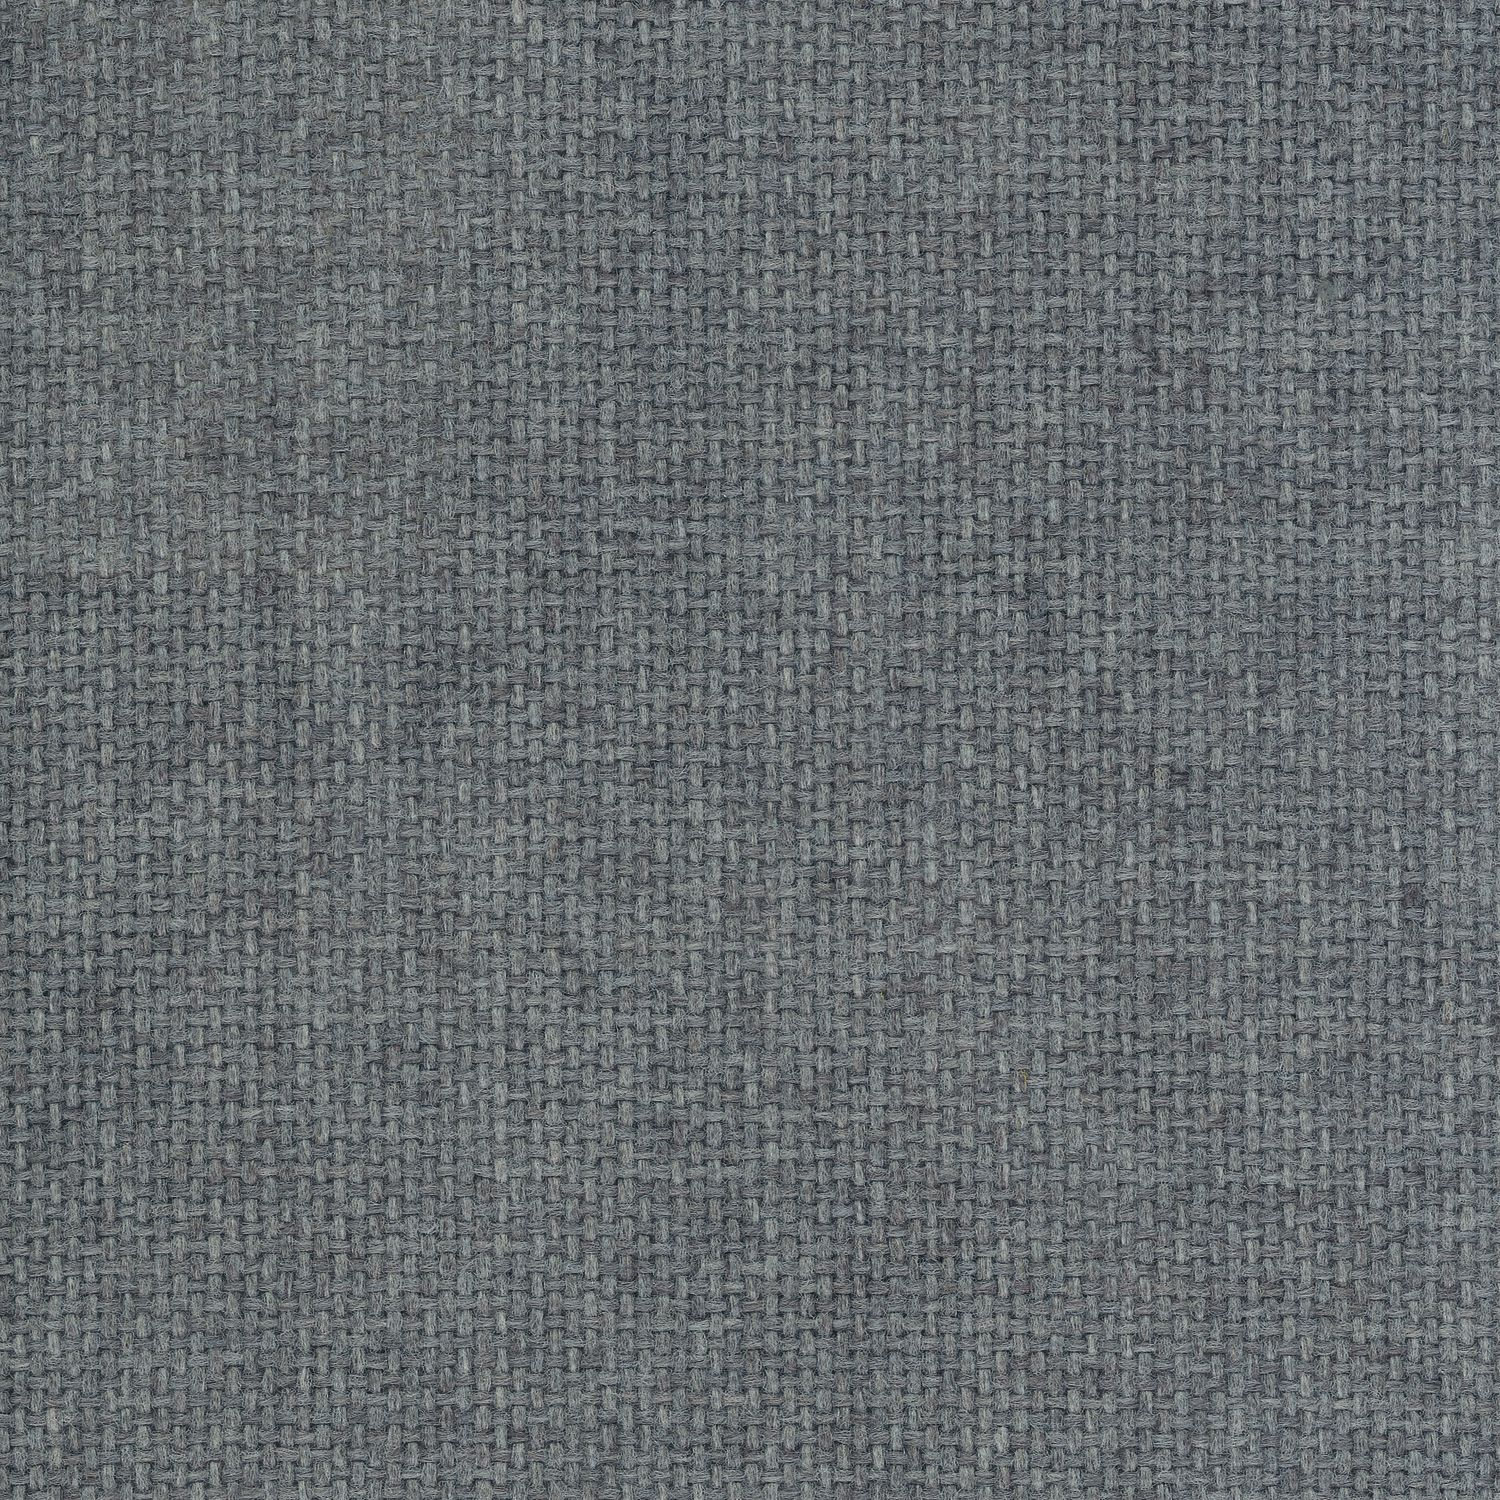 Flannel Material Google Search Acoustic Fabric Fabric